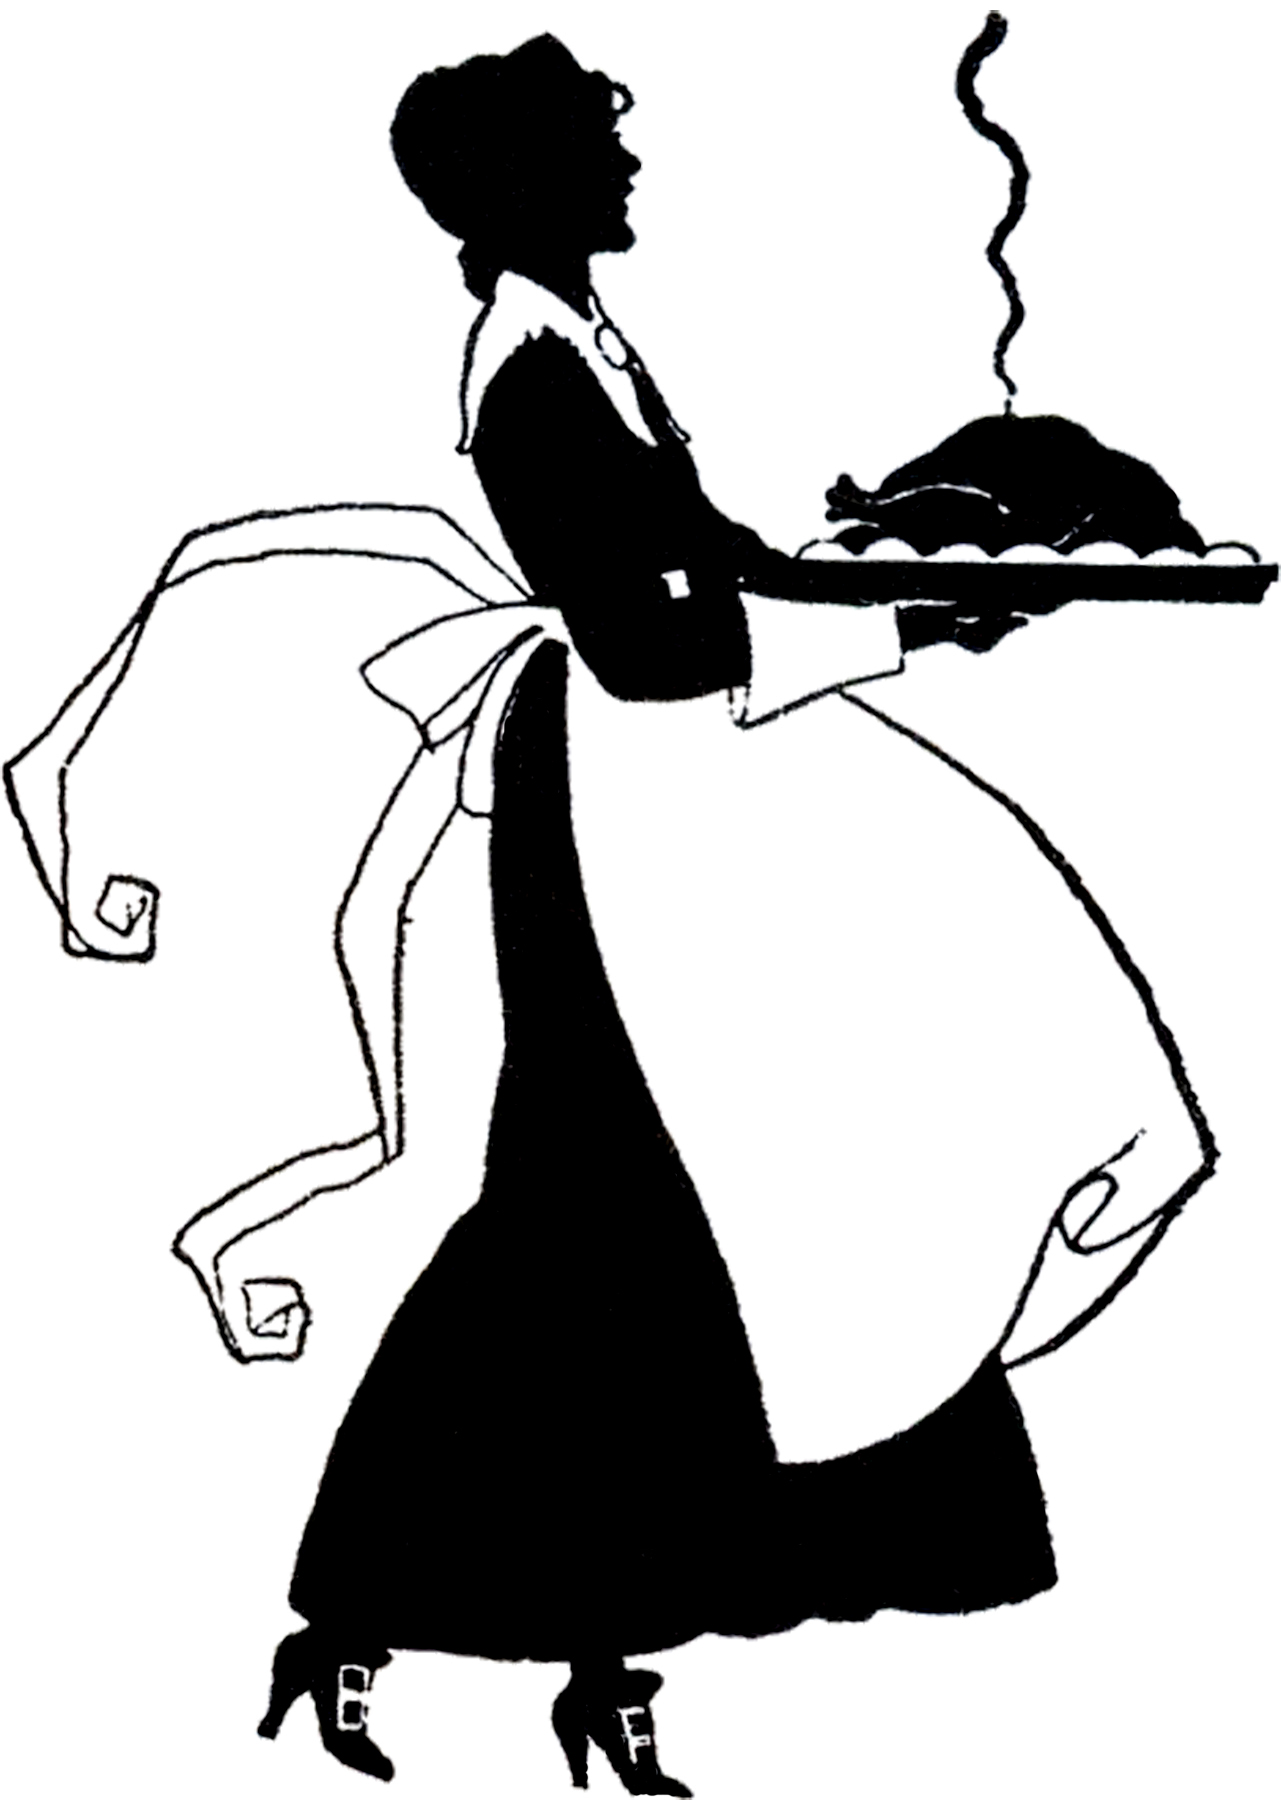 Cute Thanksgiving Pilgrim Lady Silhouette